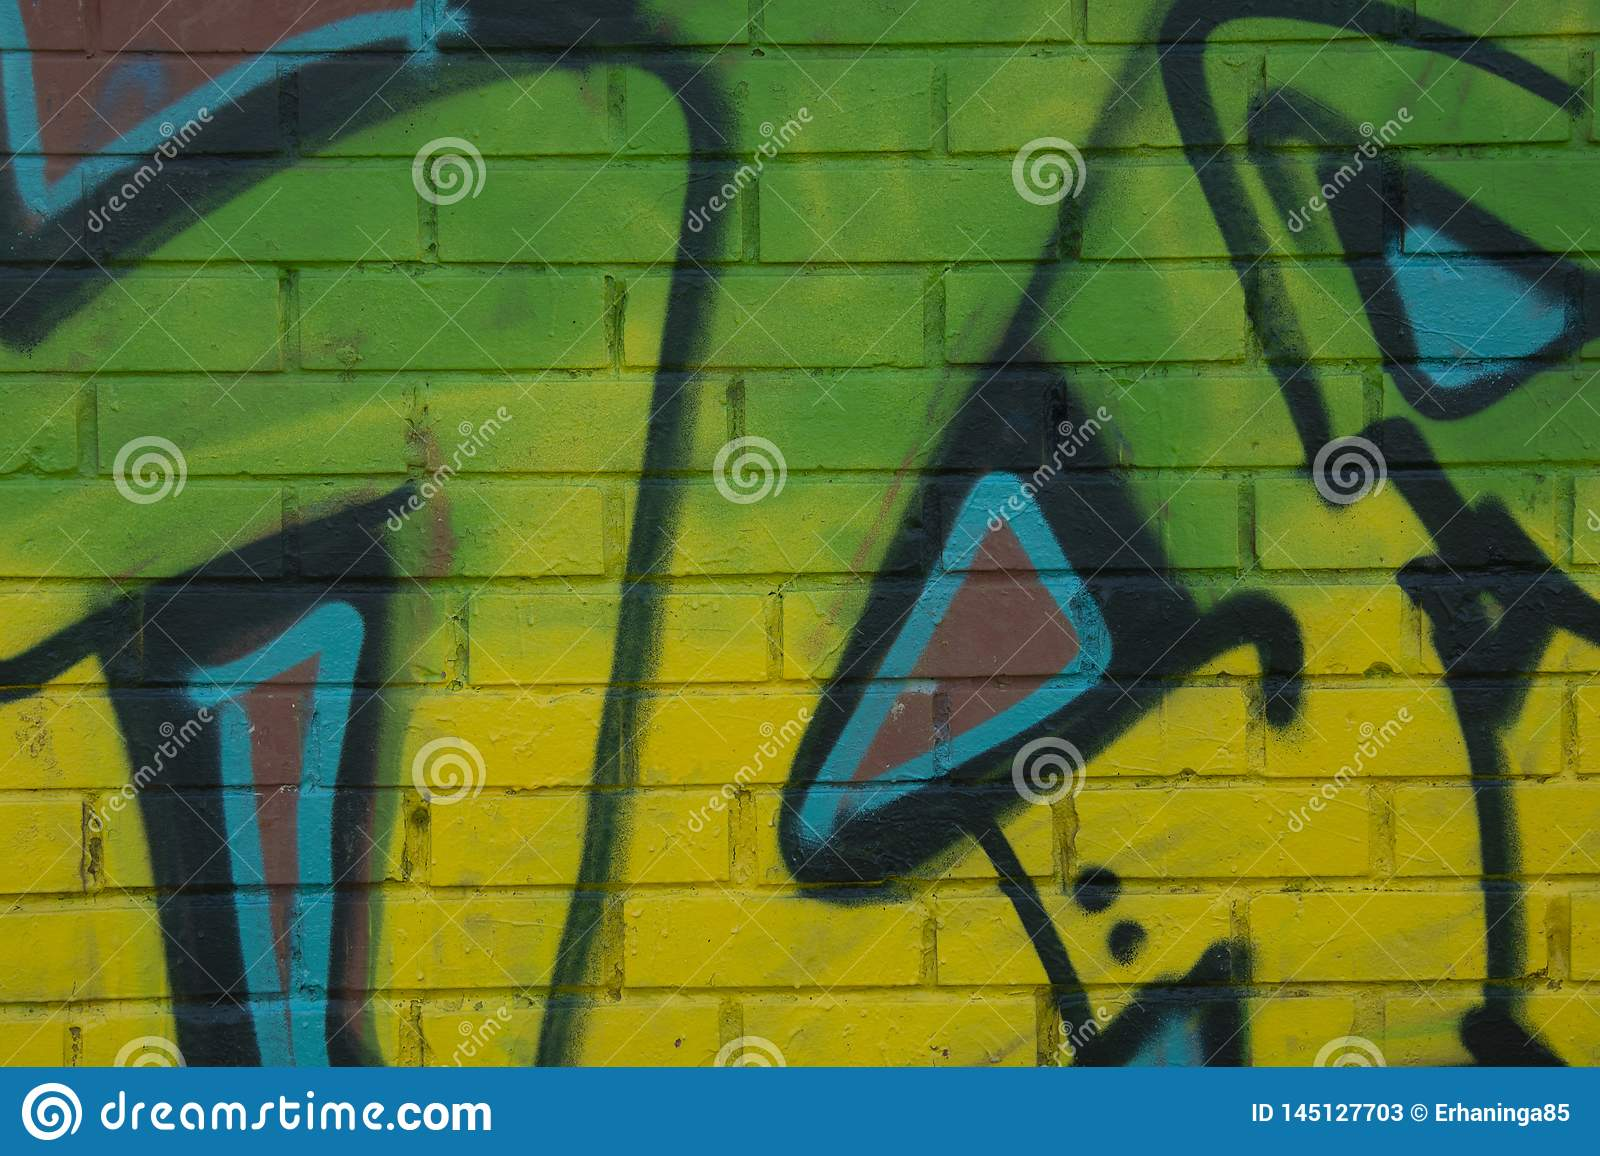 Corby, United Kingdom. April 4, 2019 - Green graffiti lettering on brich wall. Neon green piece of graffiti. Abstract background